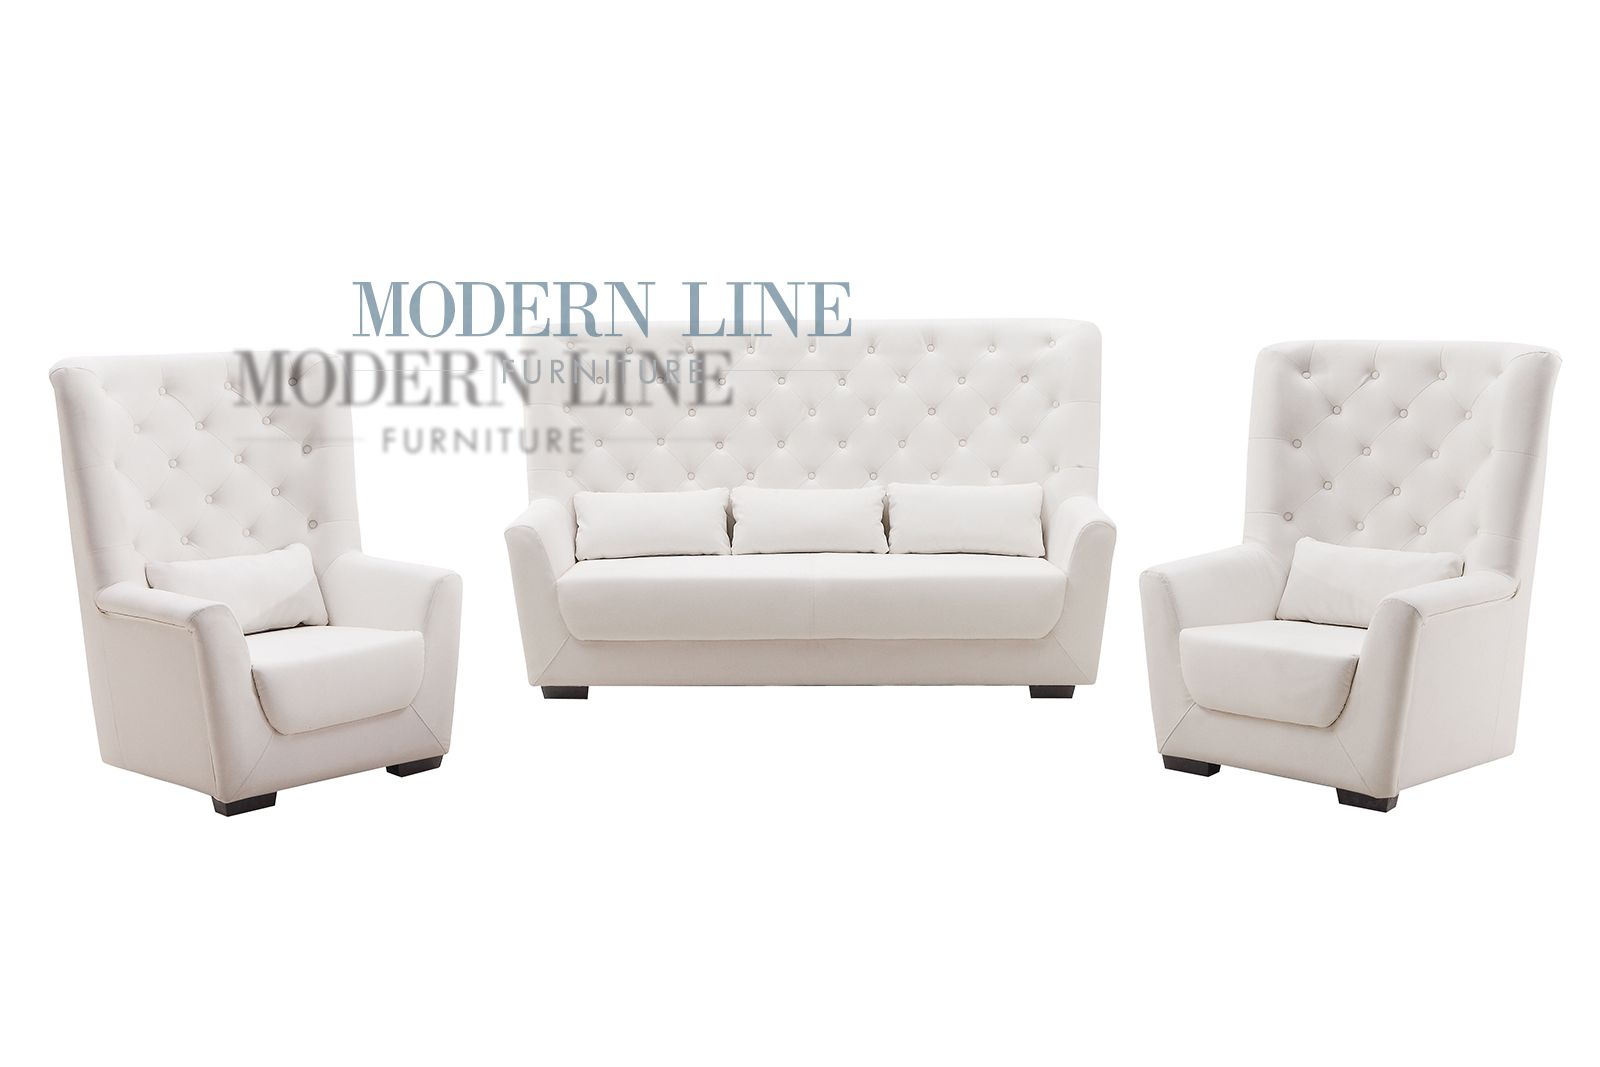 White Leather Sectional Sofa Clearance Modern Line Furniture Commercial Furniture Custom Made Furniture White Leather Sofas Modern White Leather Sofa Furniture